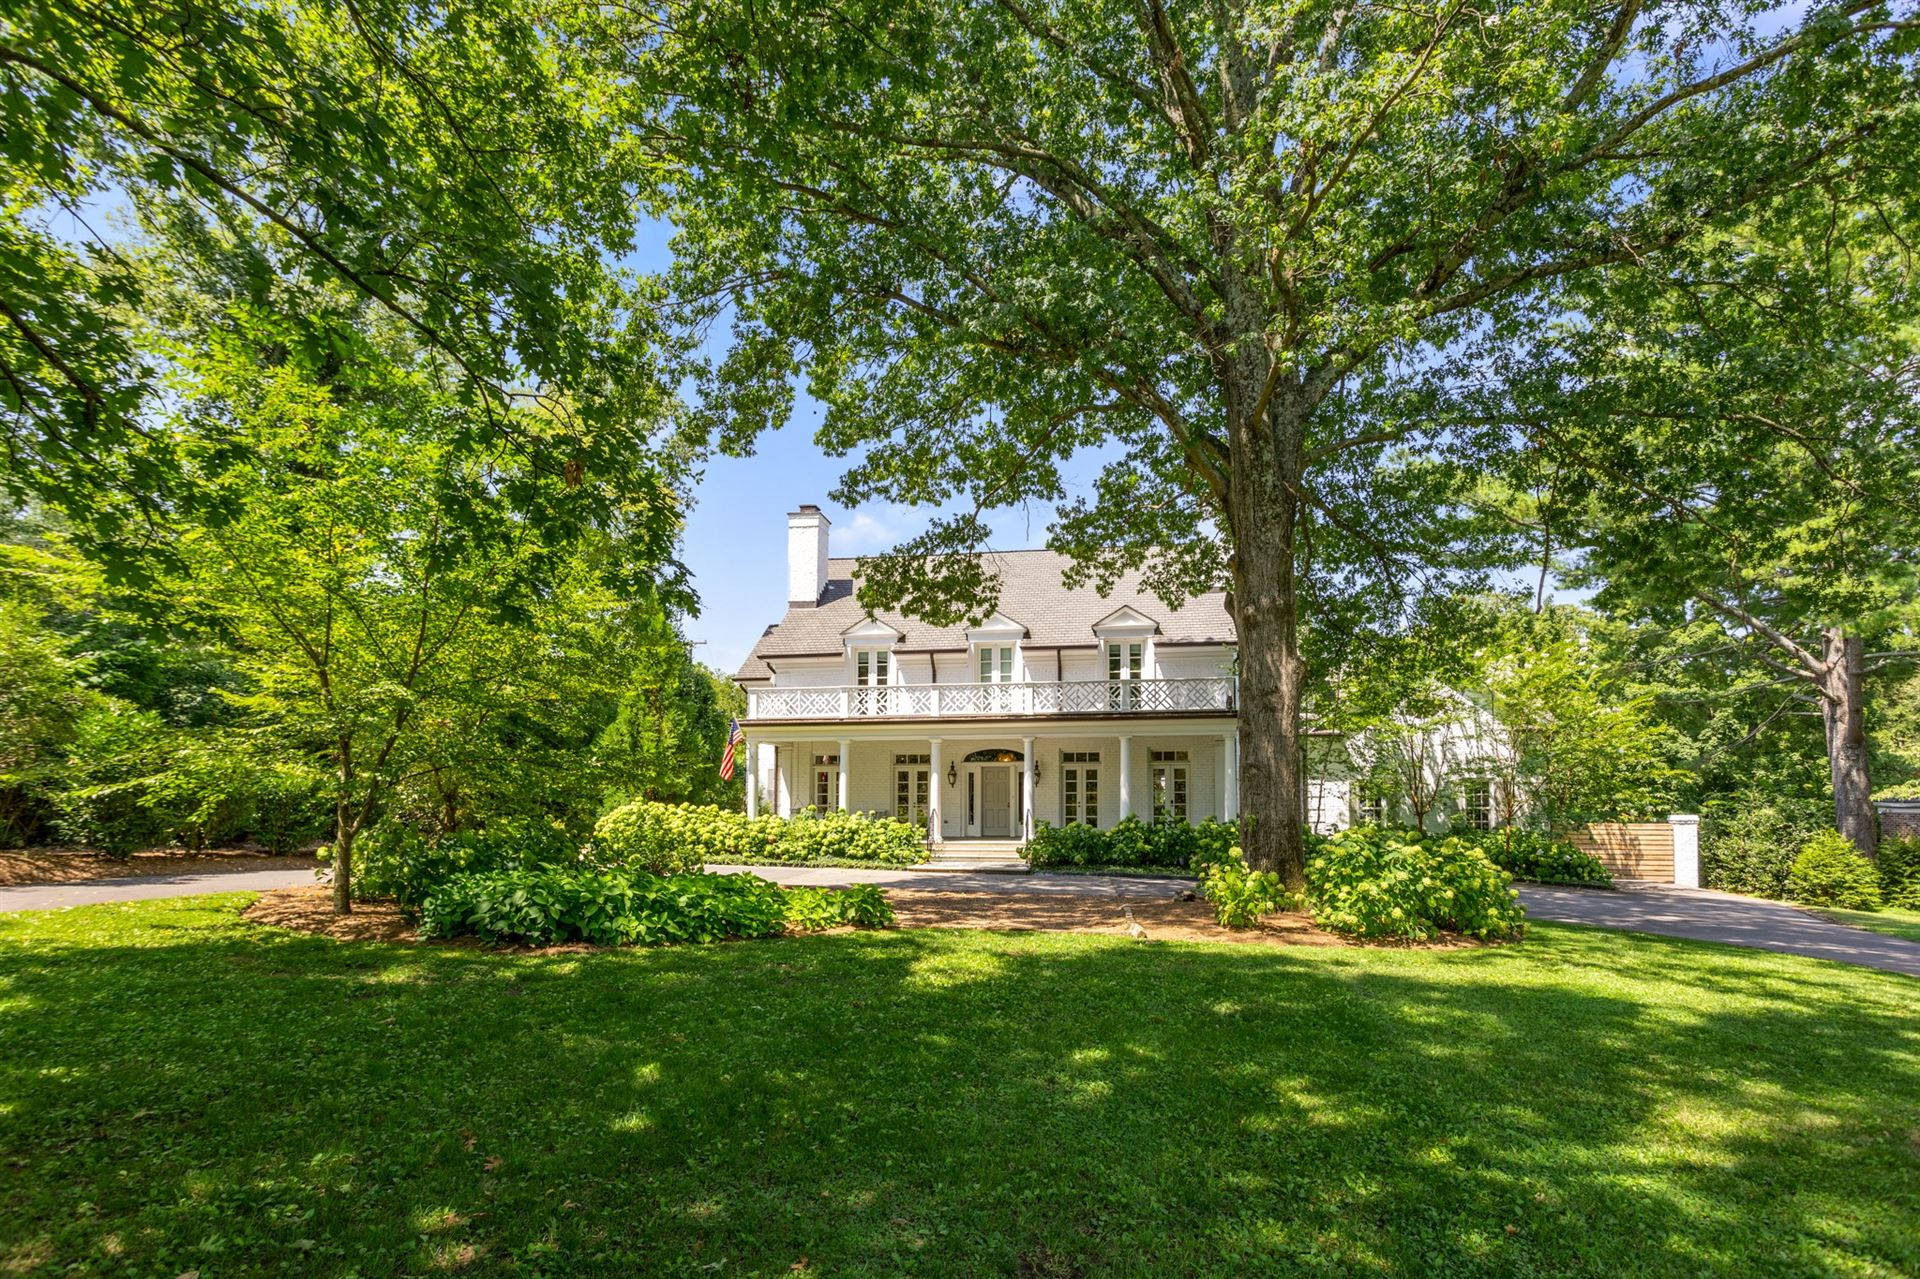 Photo of 811 Lynnbrook Rd, Nashville, TN 37215 (MLS # 2178791)